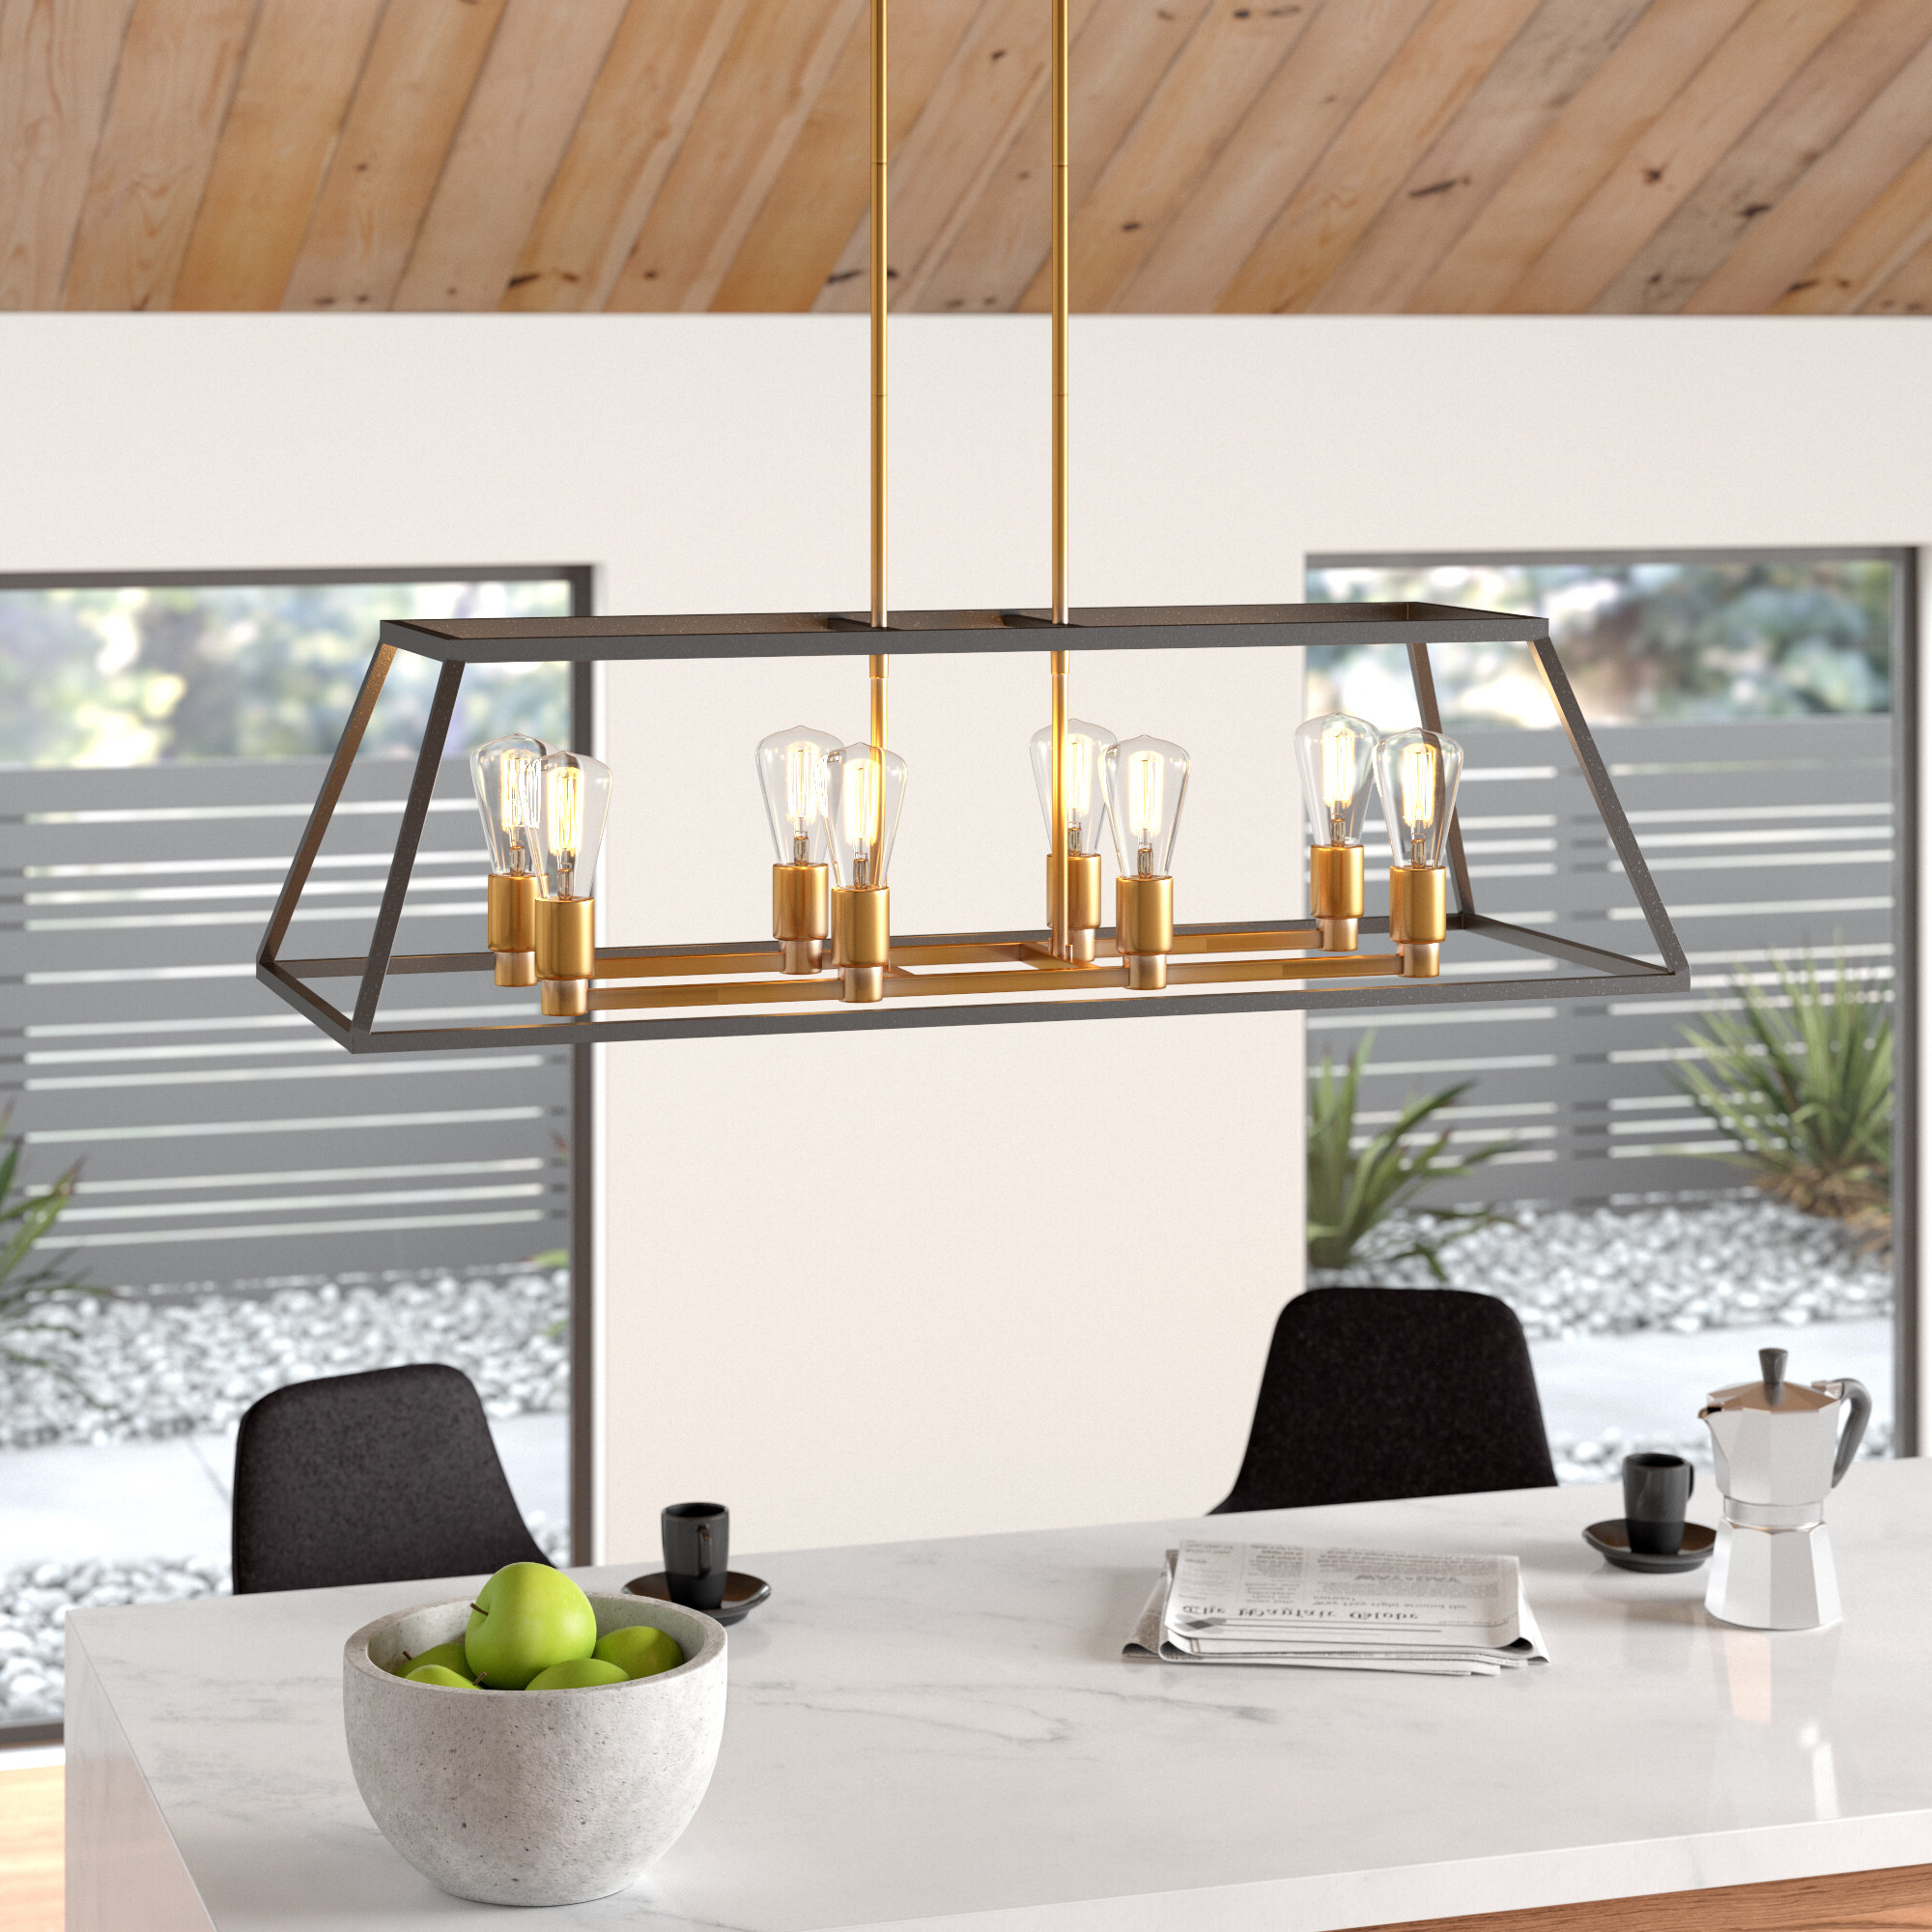 Jefferson 4 Light Kitchen Island Linear Pendants Intended For Preferred Shisler 8 Light Kitchen Island Linear Pendant (View 8 of 25)